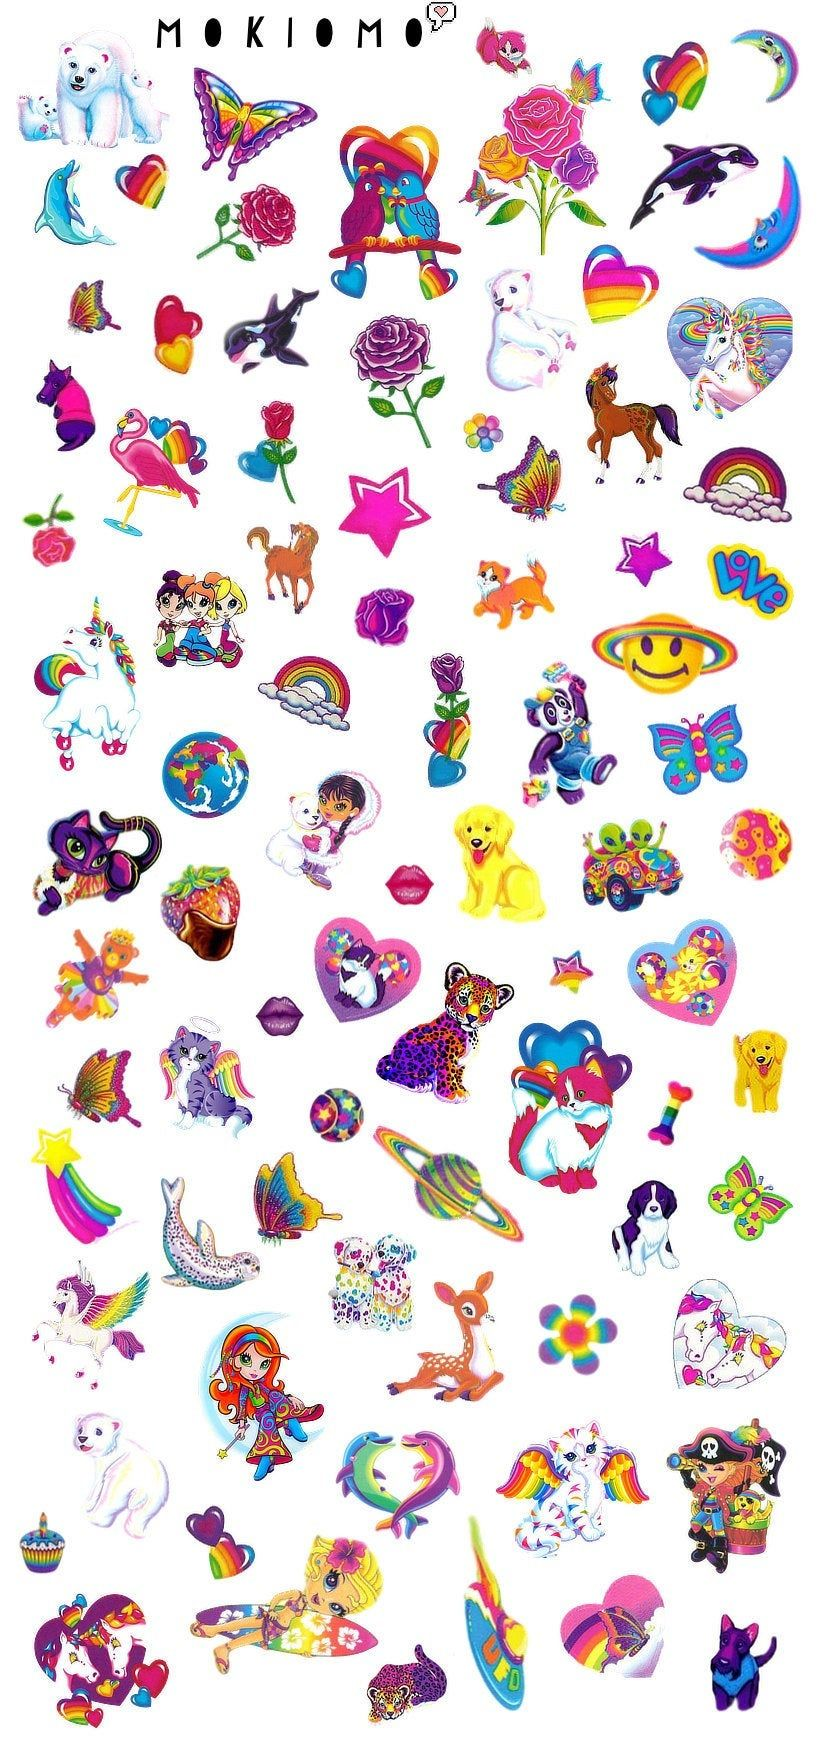 Lisa Frank Nail Decals Nail Art Nail Decals Waterslide Decals Nail Design Nail Decal Wraps By Mokiomo On Lisa Frank Stickers Sticker Art Print Stickers